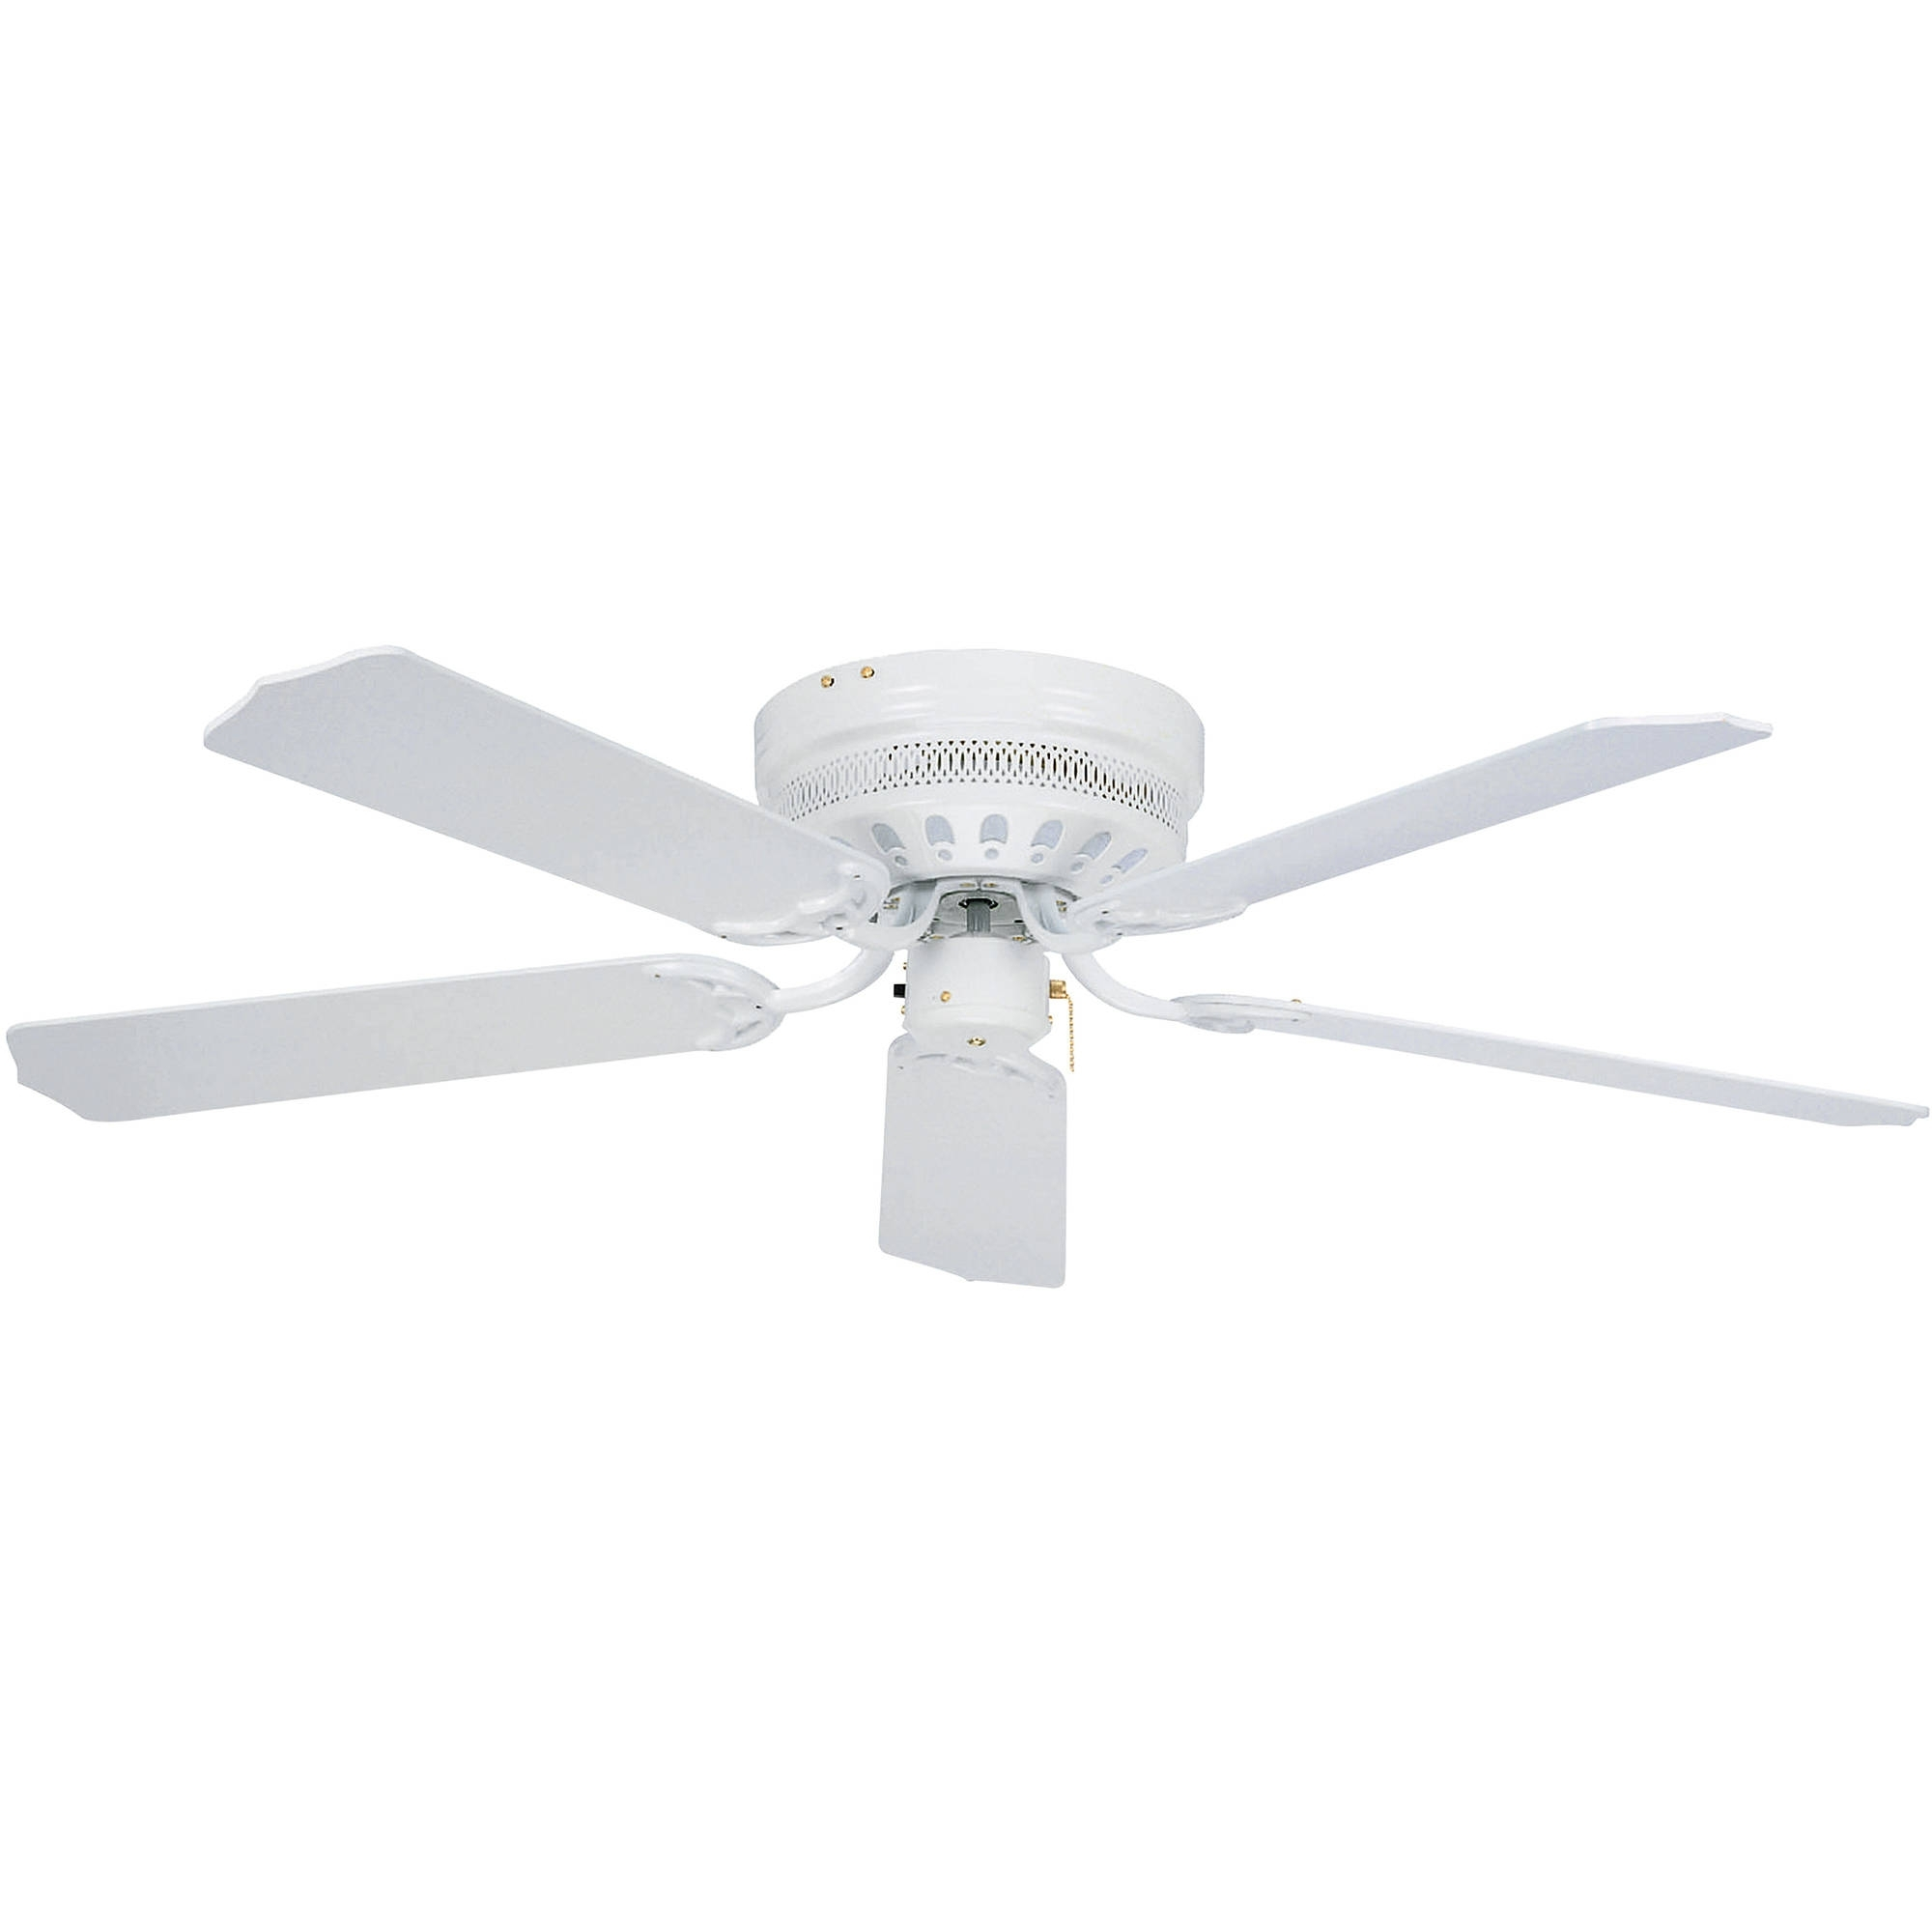 "Outdoor Ceiling Fans With Lights At Walmart Throughout Latest 42"" Mainstays Hugger Indoor Ceiling Fan With Light, White – Walmart (View 13 of 20)"